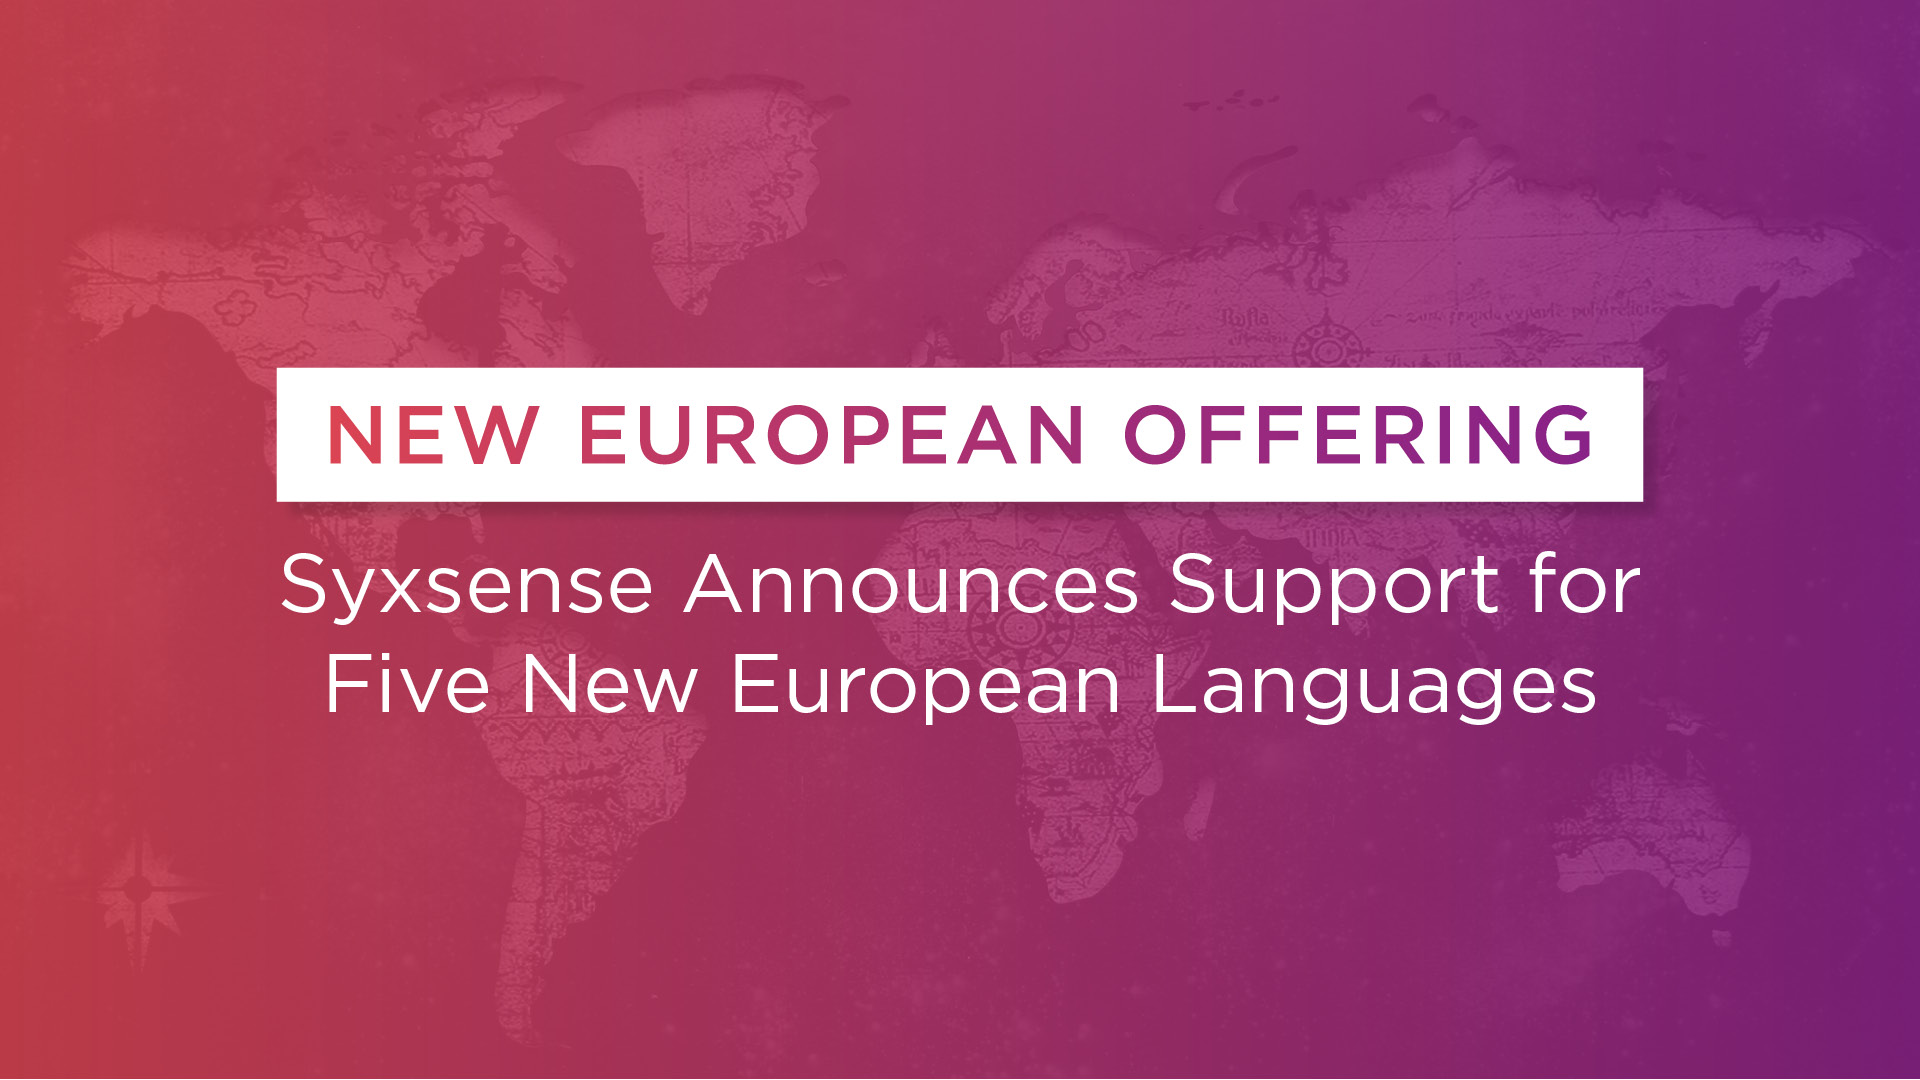 Syxsense Extends Language Support in Europe